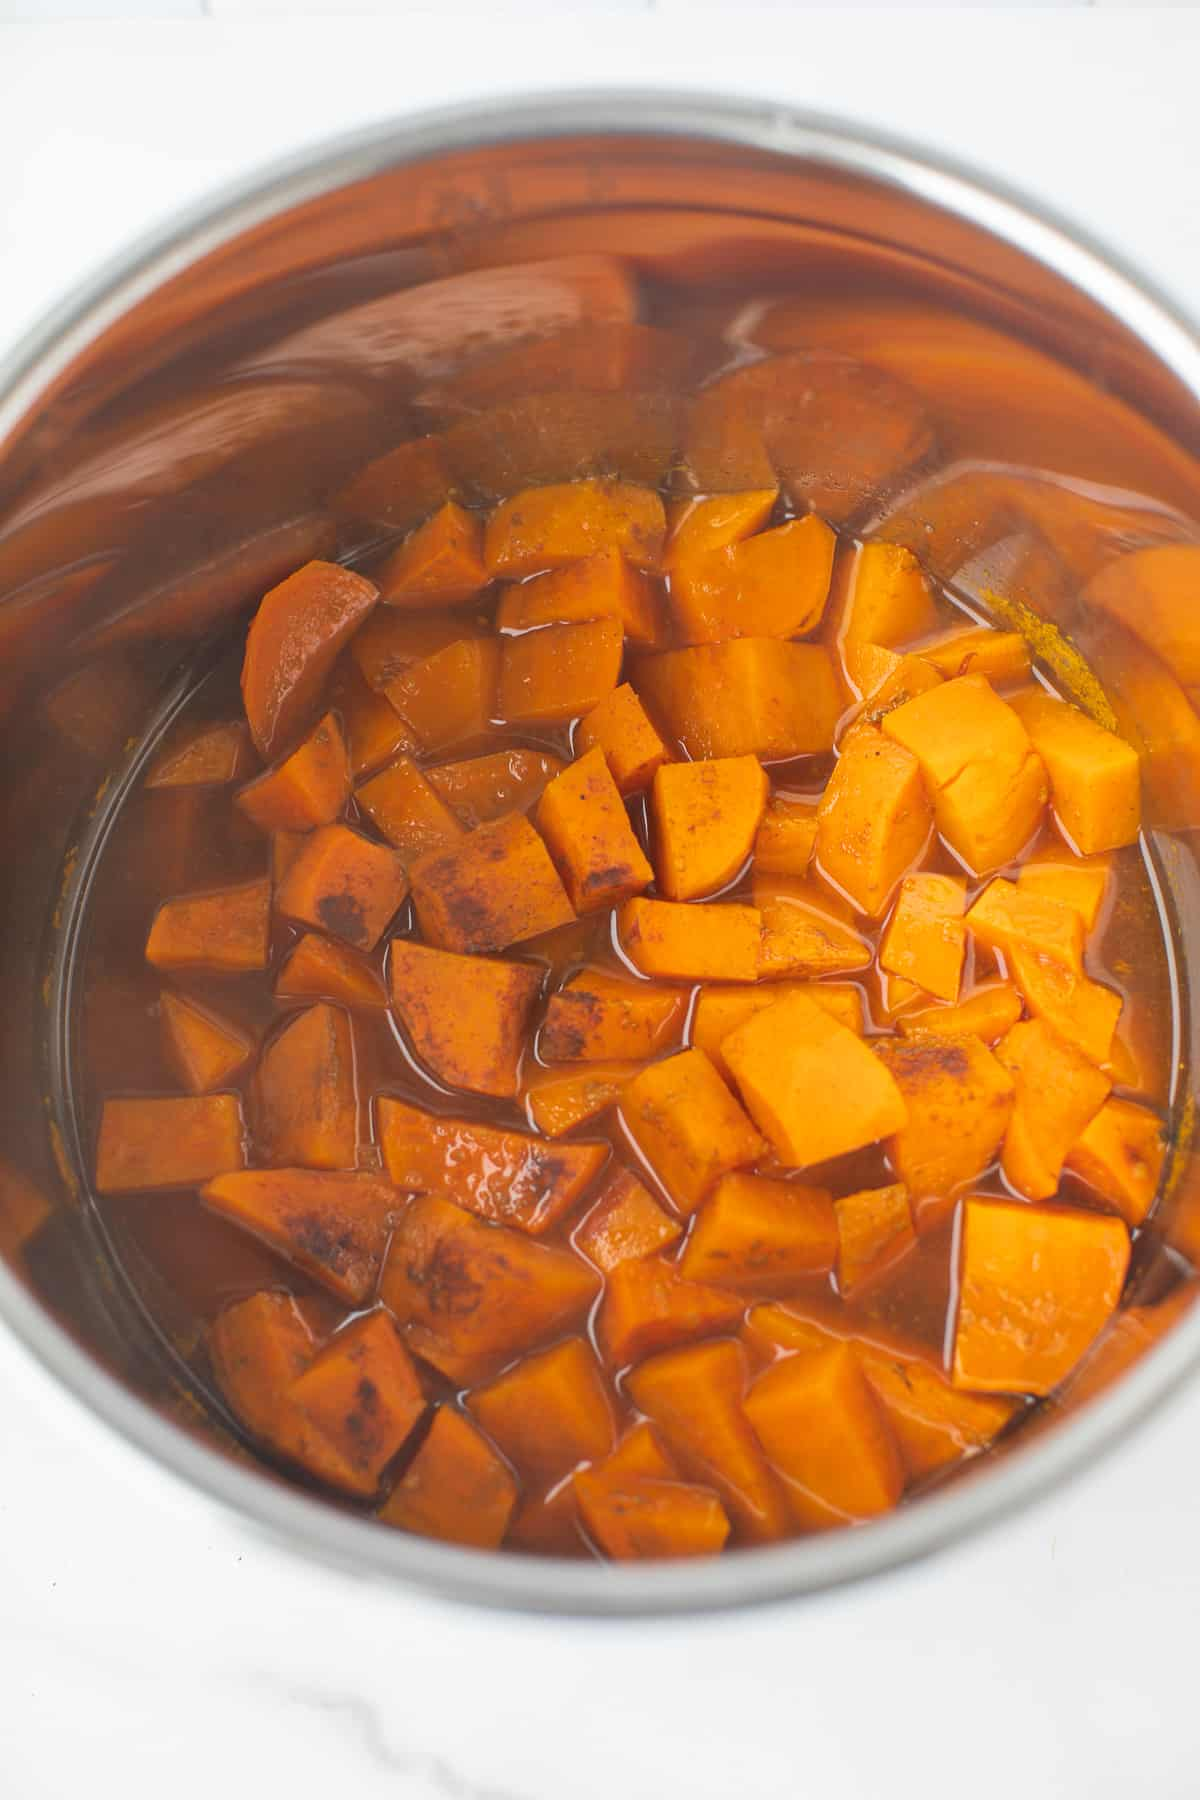 cooked yams in an instant pot